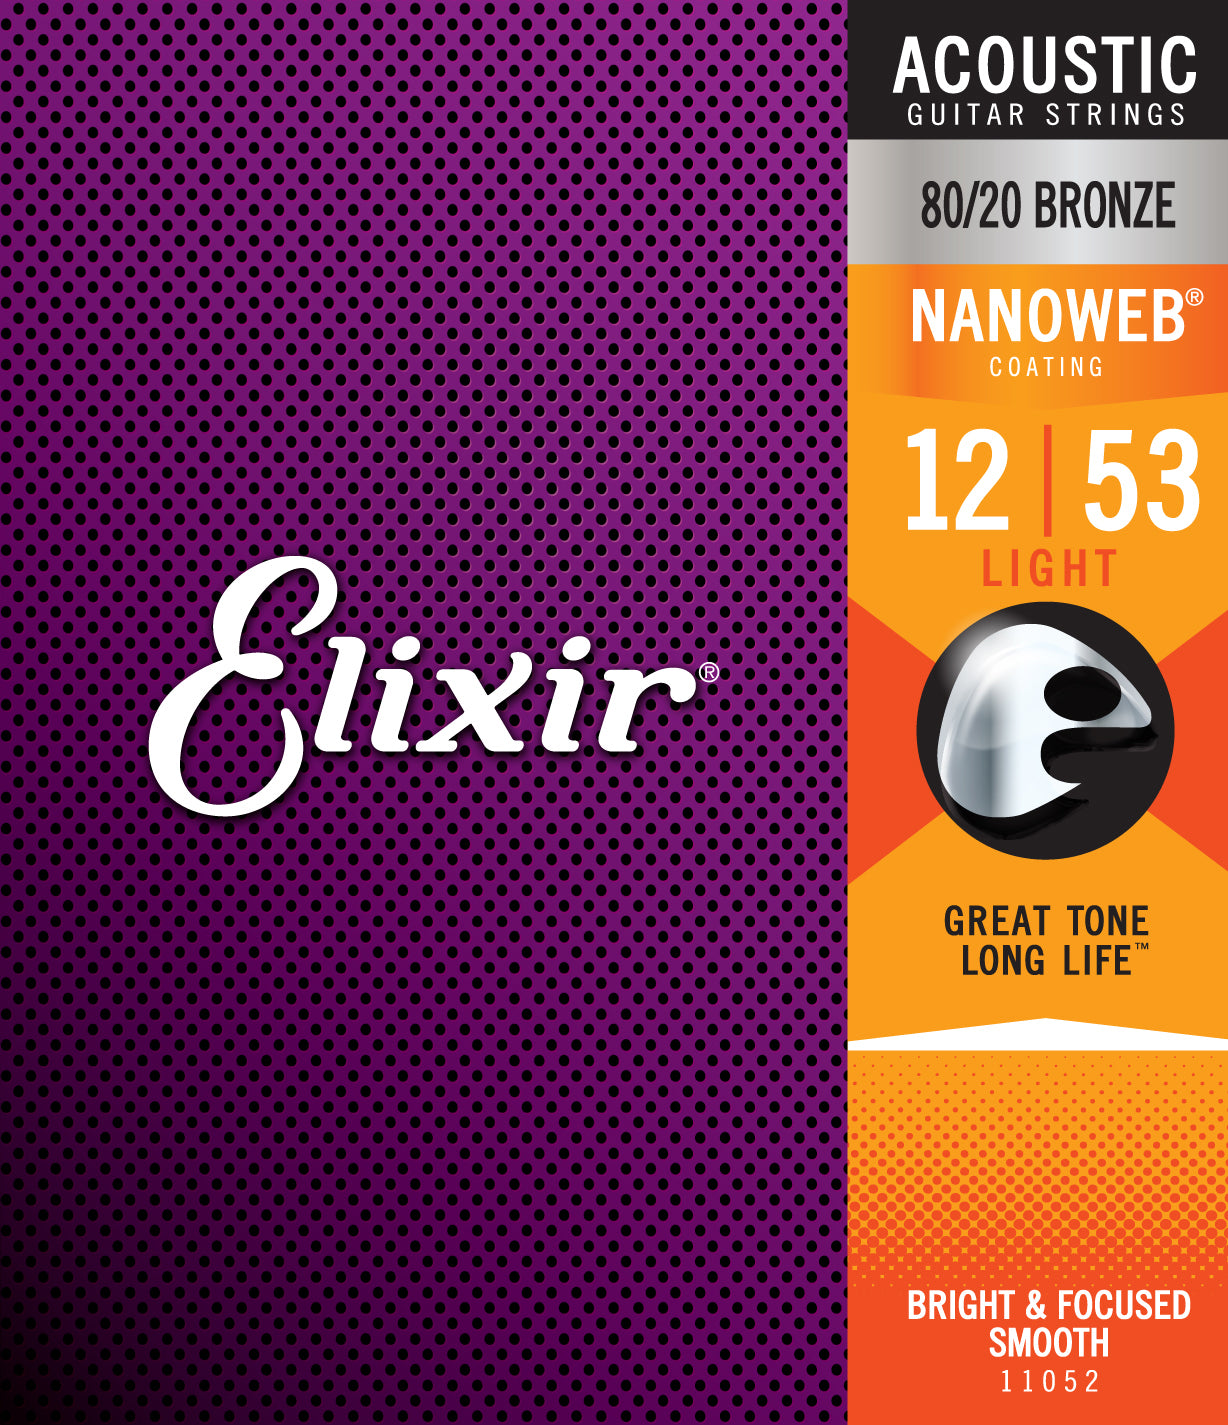 Elixir Strings Nanoweb 80/20 Bronze Acoustic Guitar Strings -.012-.053 Light